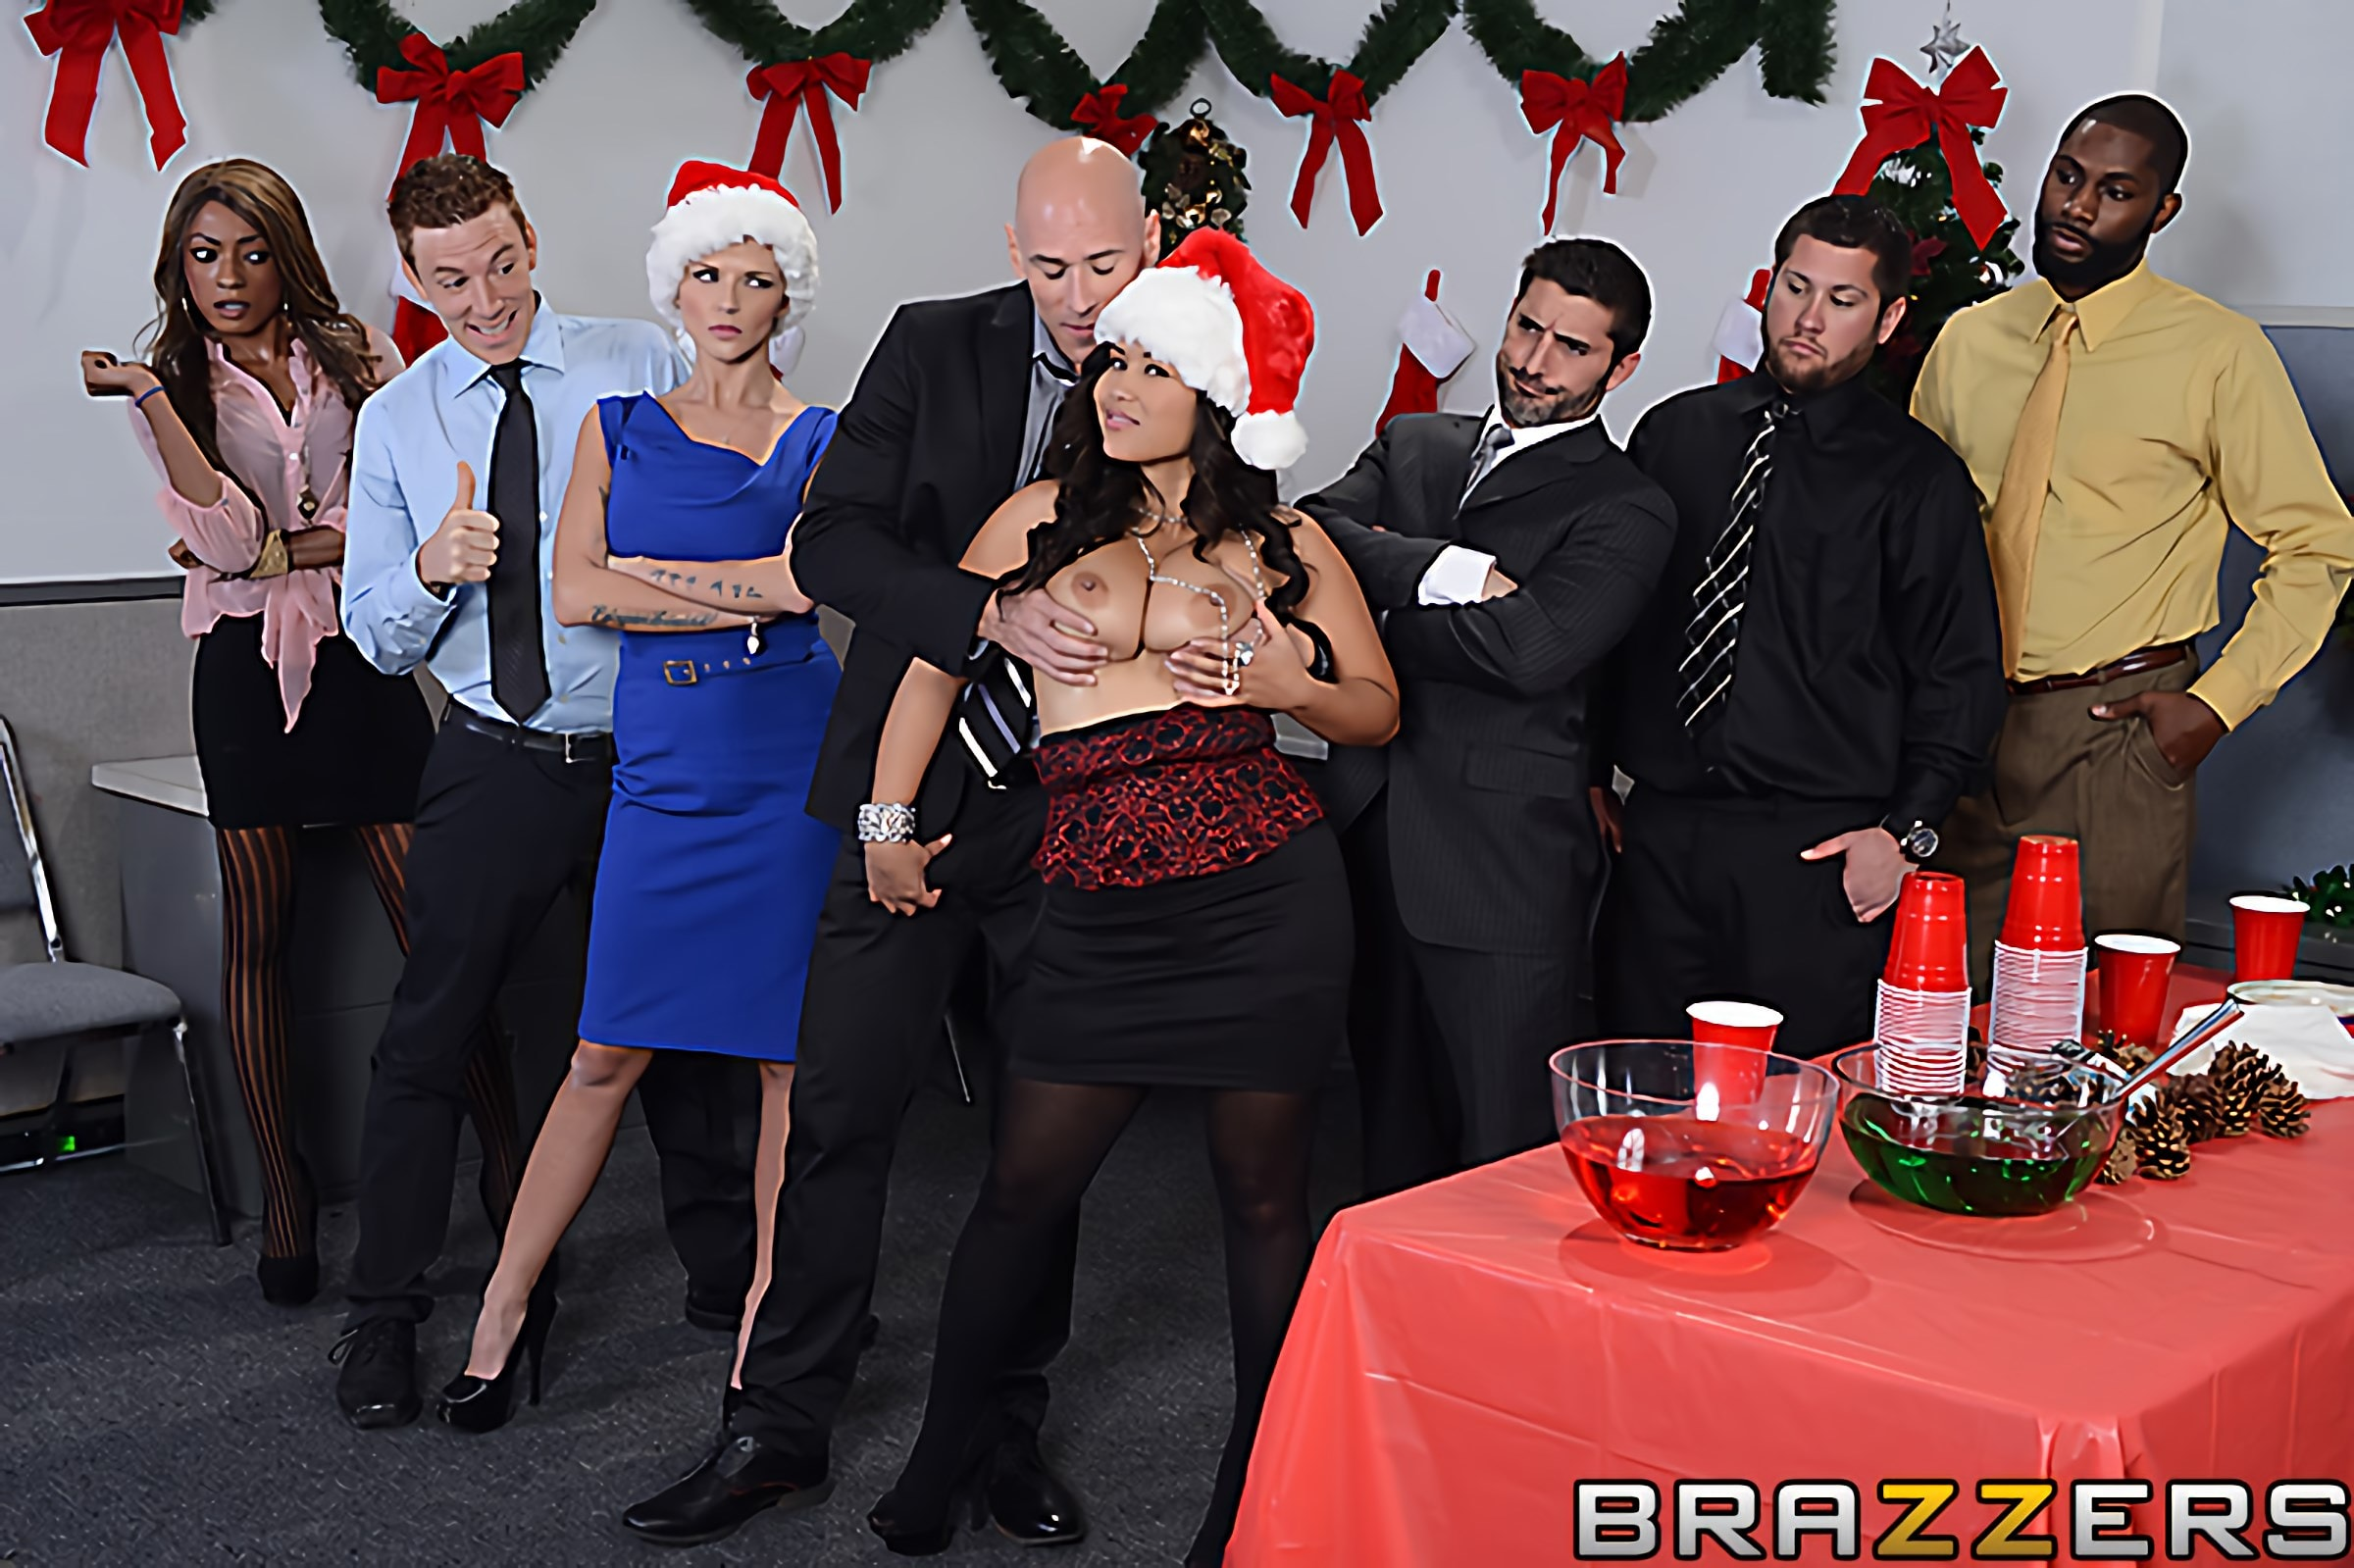 Brazzers 'Office Christmas Party' starring Jessica Bangkok (Photo 1)